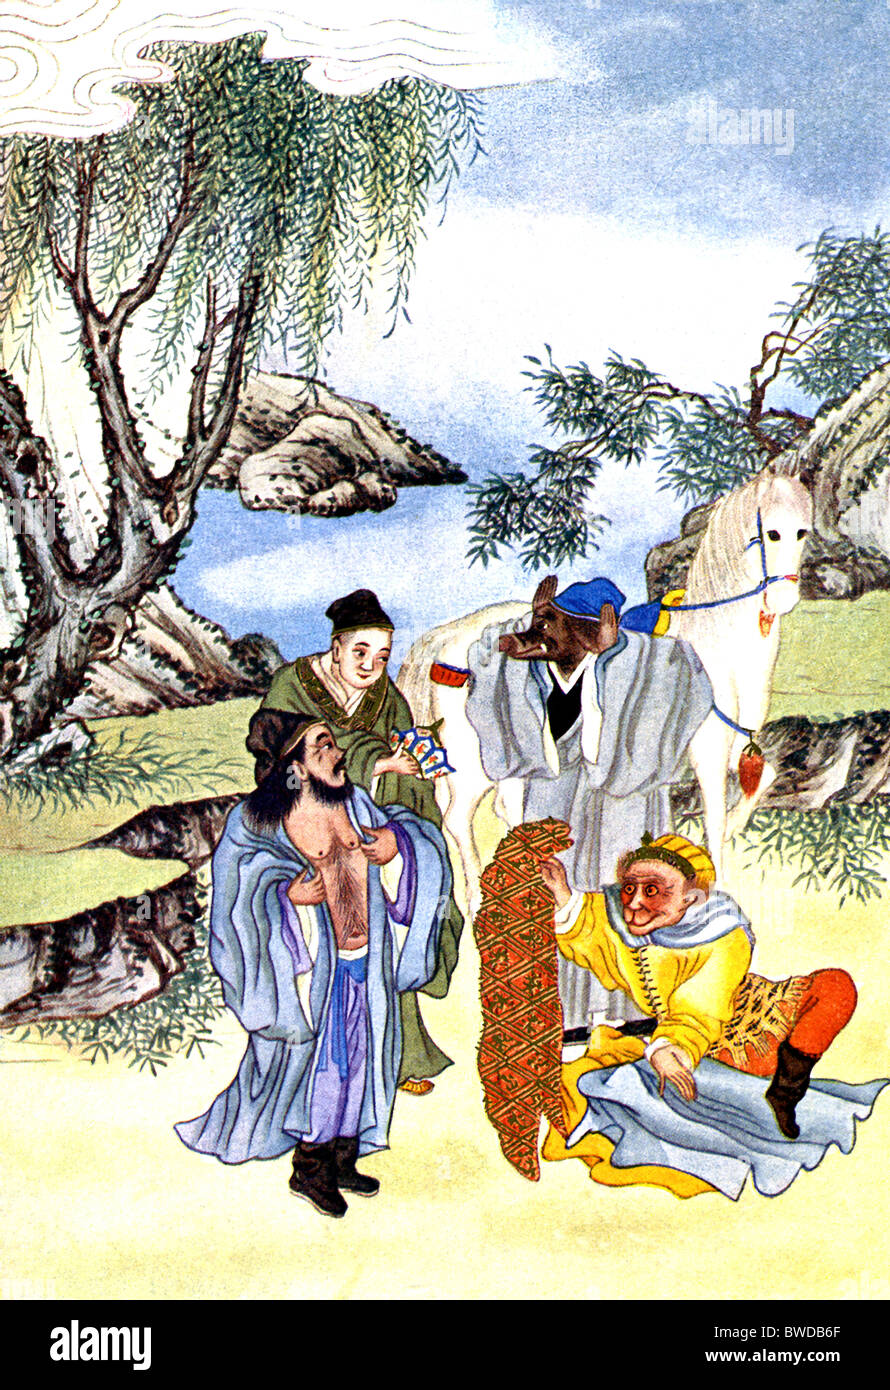 The priest Hsuan Chuang, known as the Master, traveled with the Sun, the Monkey god, to the Country That Exterminates - Stock Image